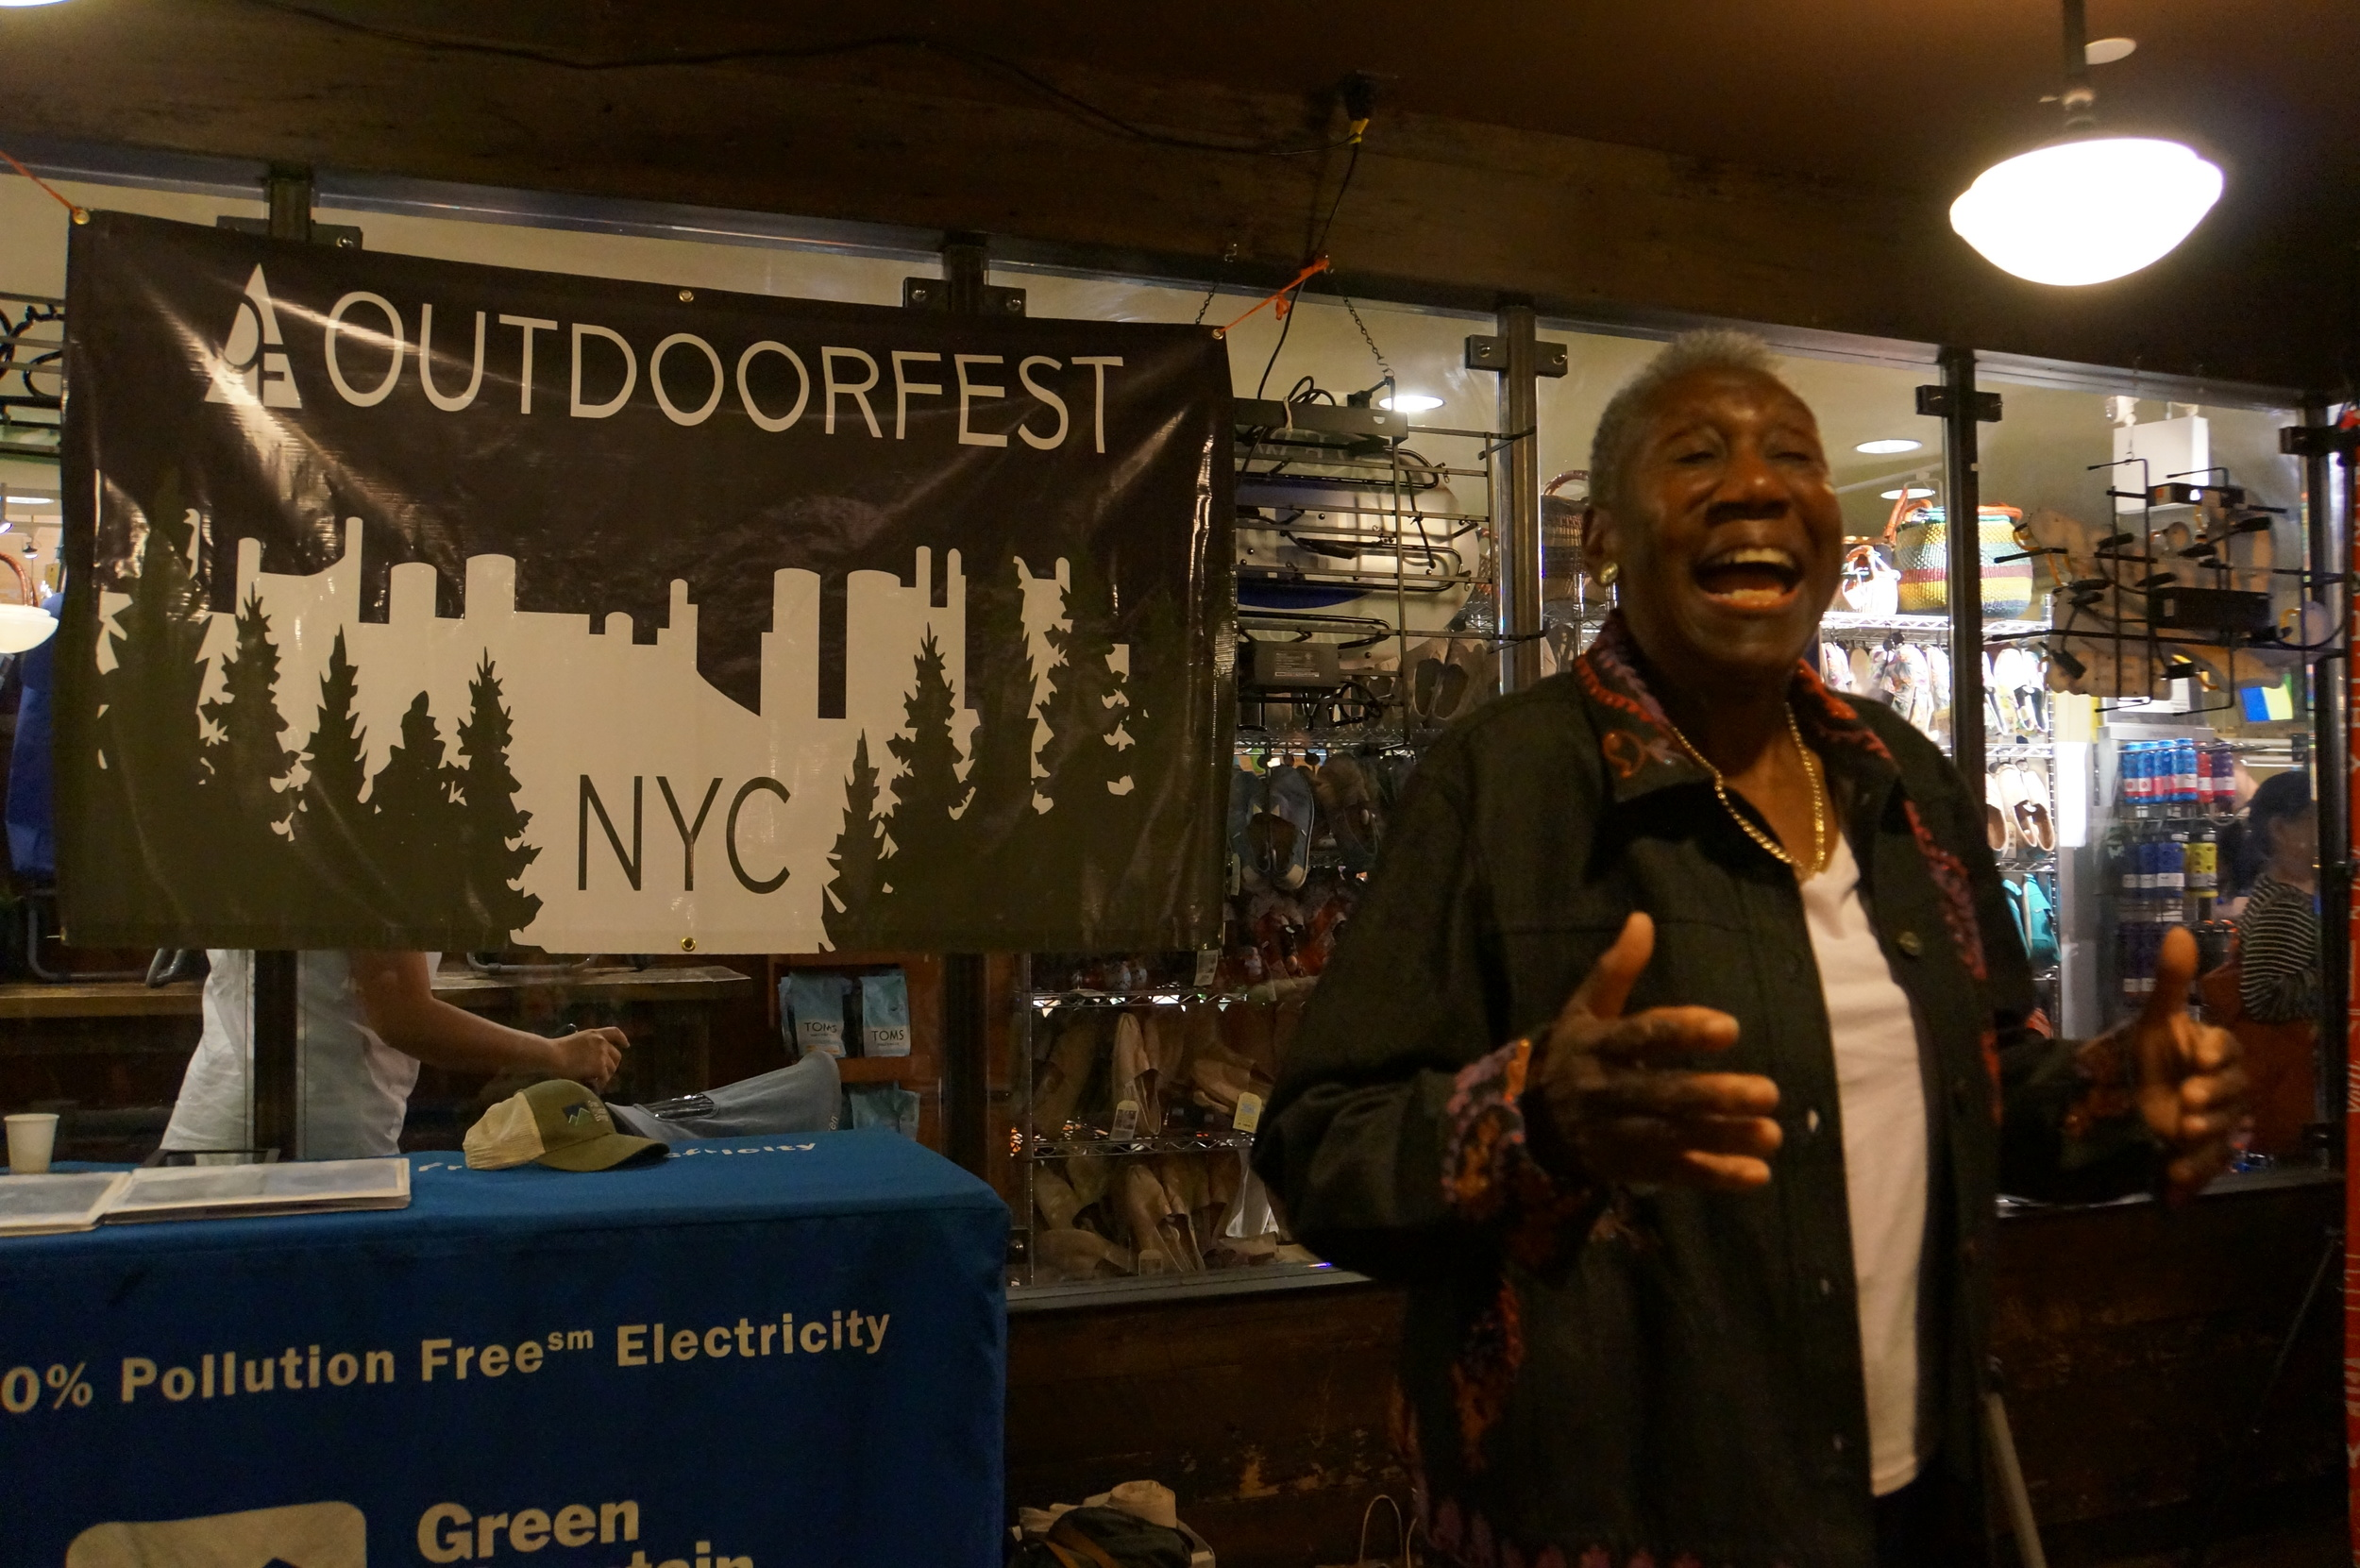 Barbara Hillary speaks at the Final OutdoorFest event